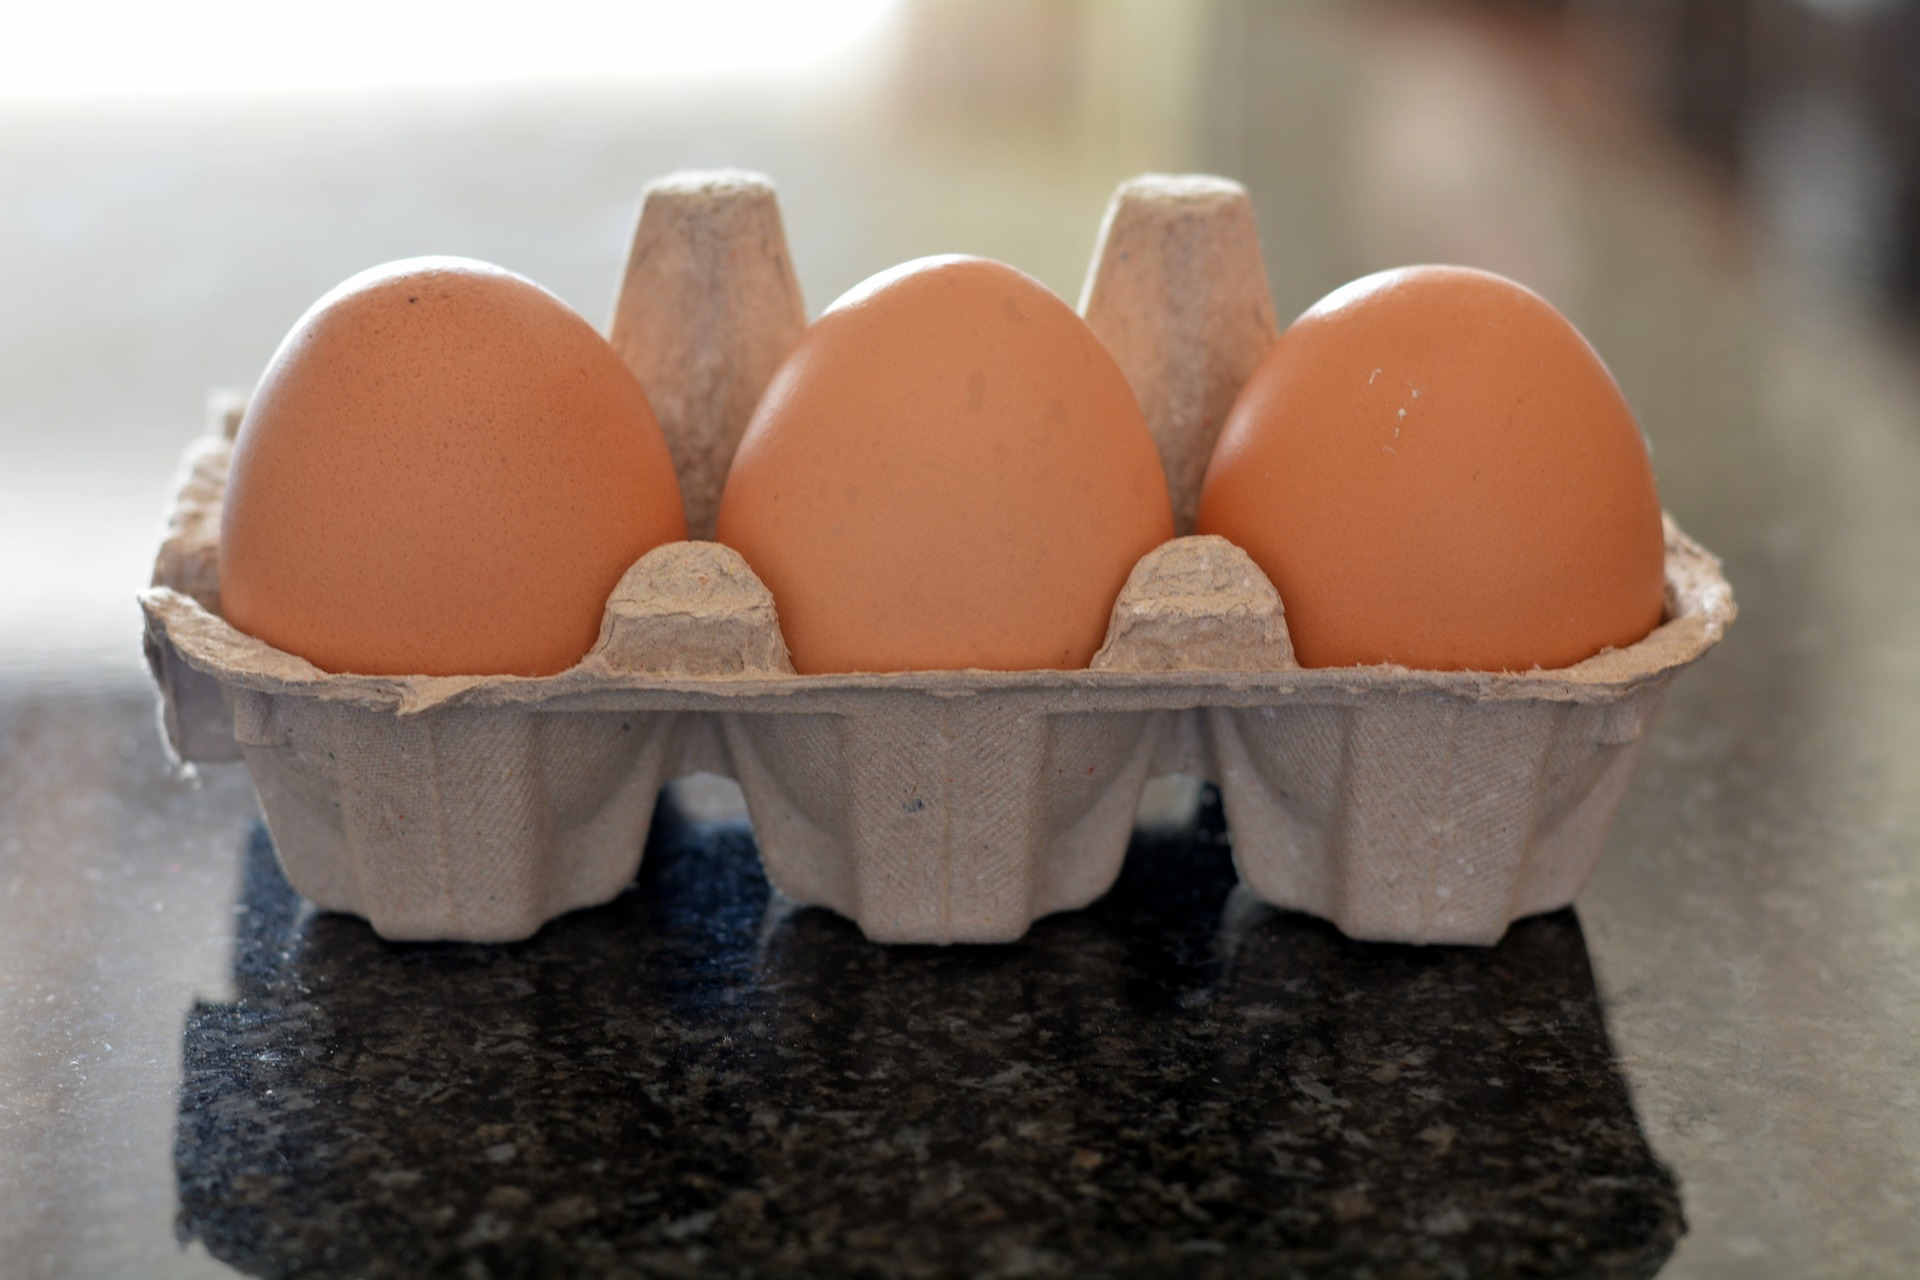 egg-container-1709039_1920